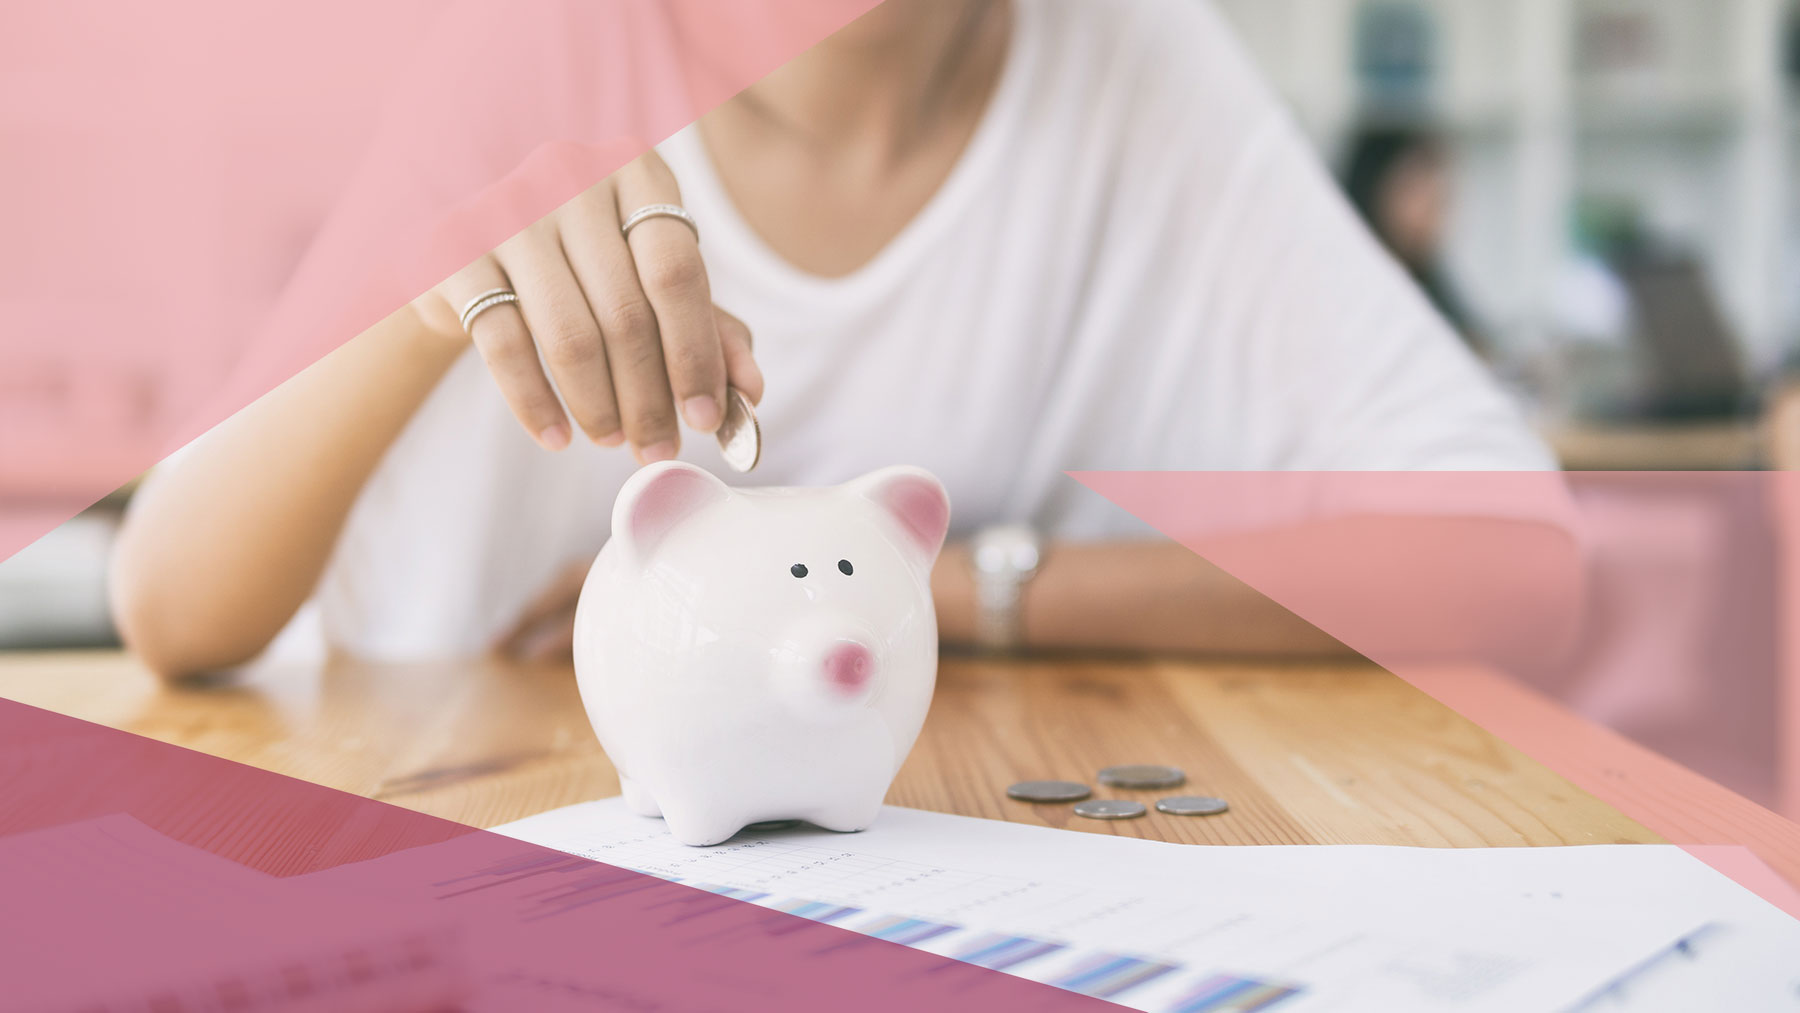 Woman putting money in piggy bank: 6 Little Ways You Can Save Every Day for Your Second Home